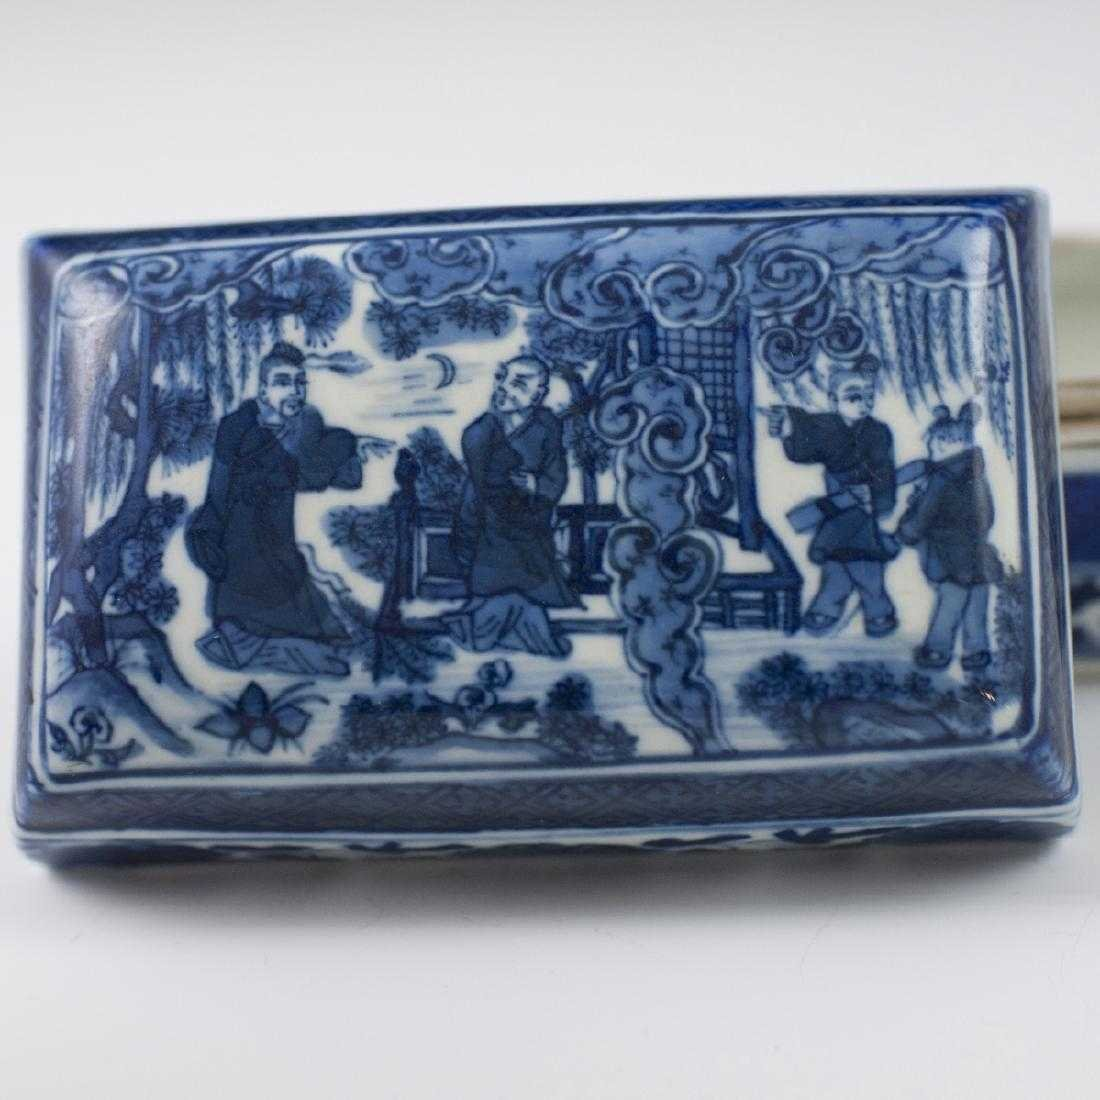 Antique Chinese Porcelain Box - 4